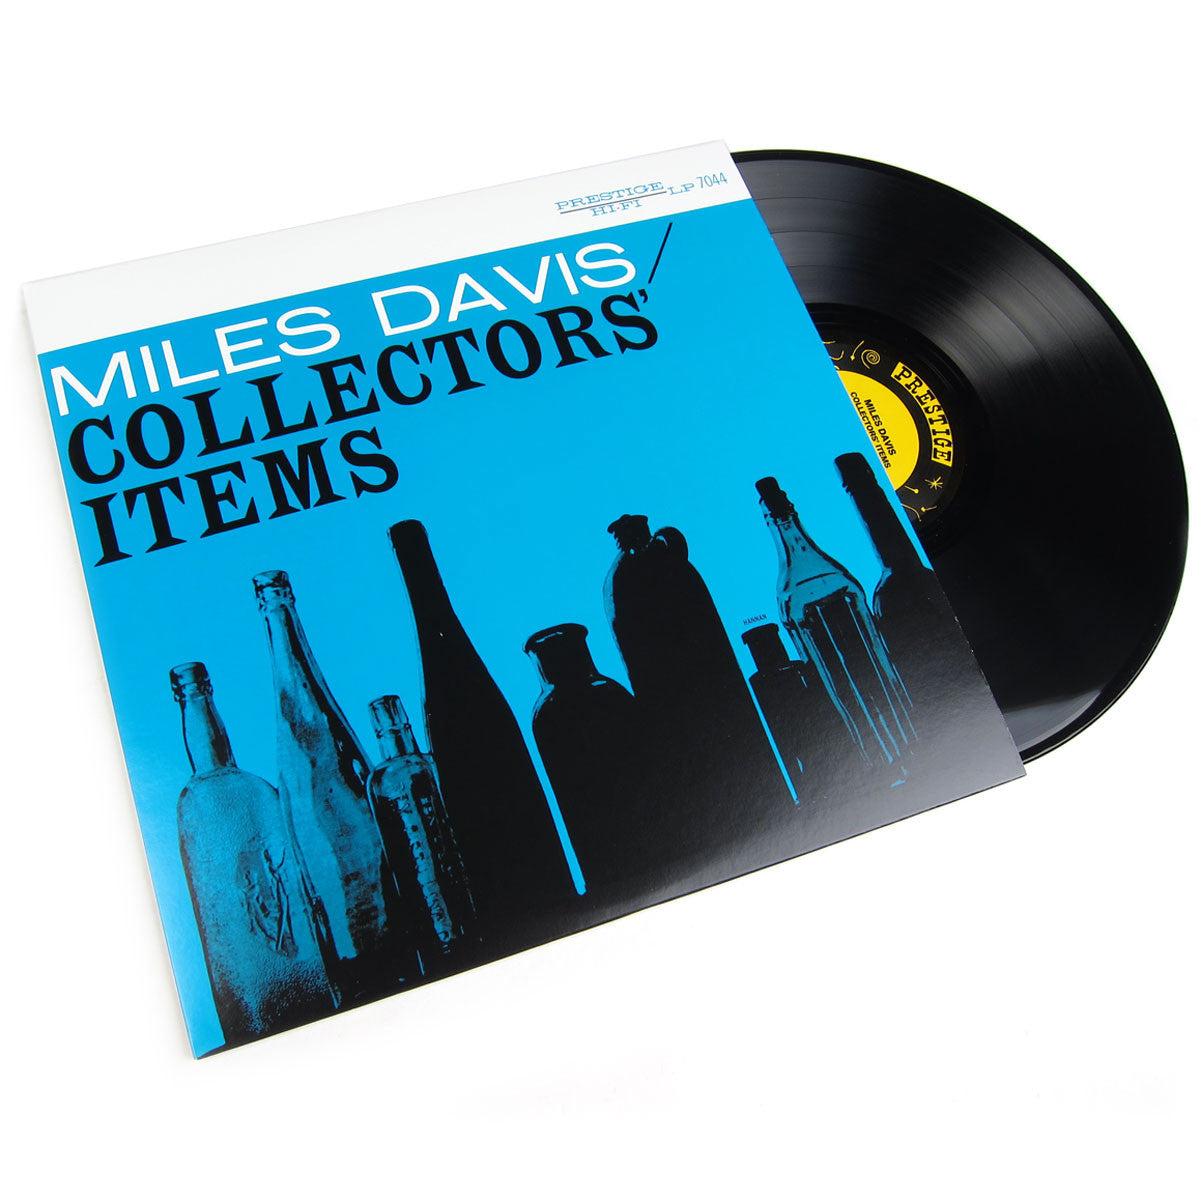 Miles Davis: Collectors' Items Vinyl LP